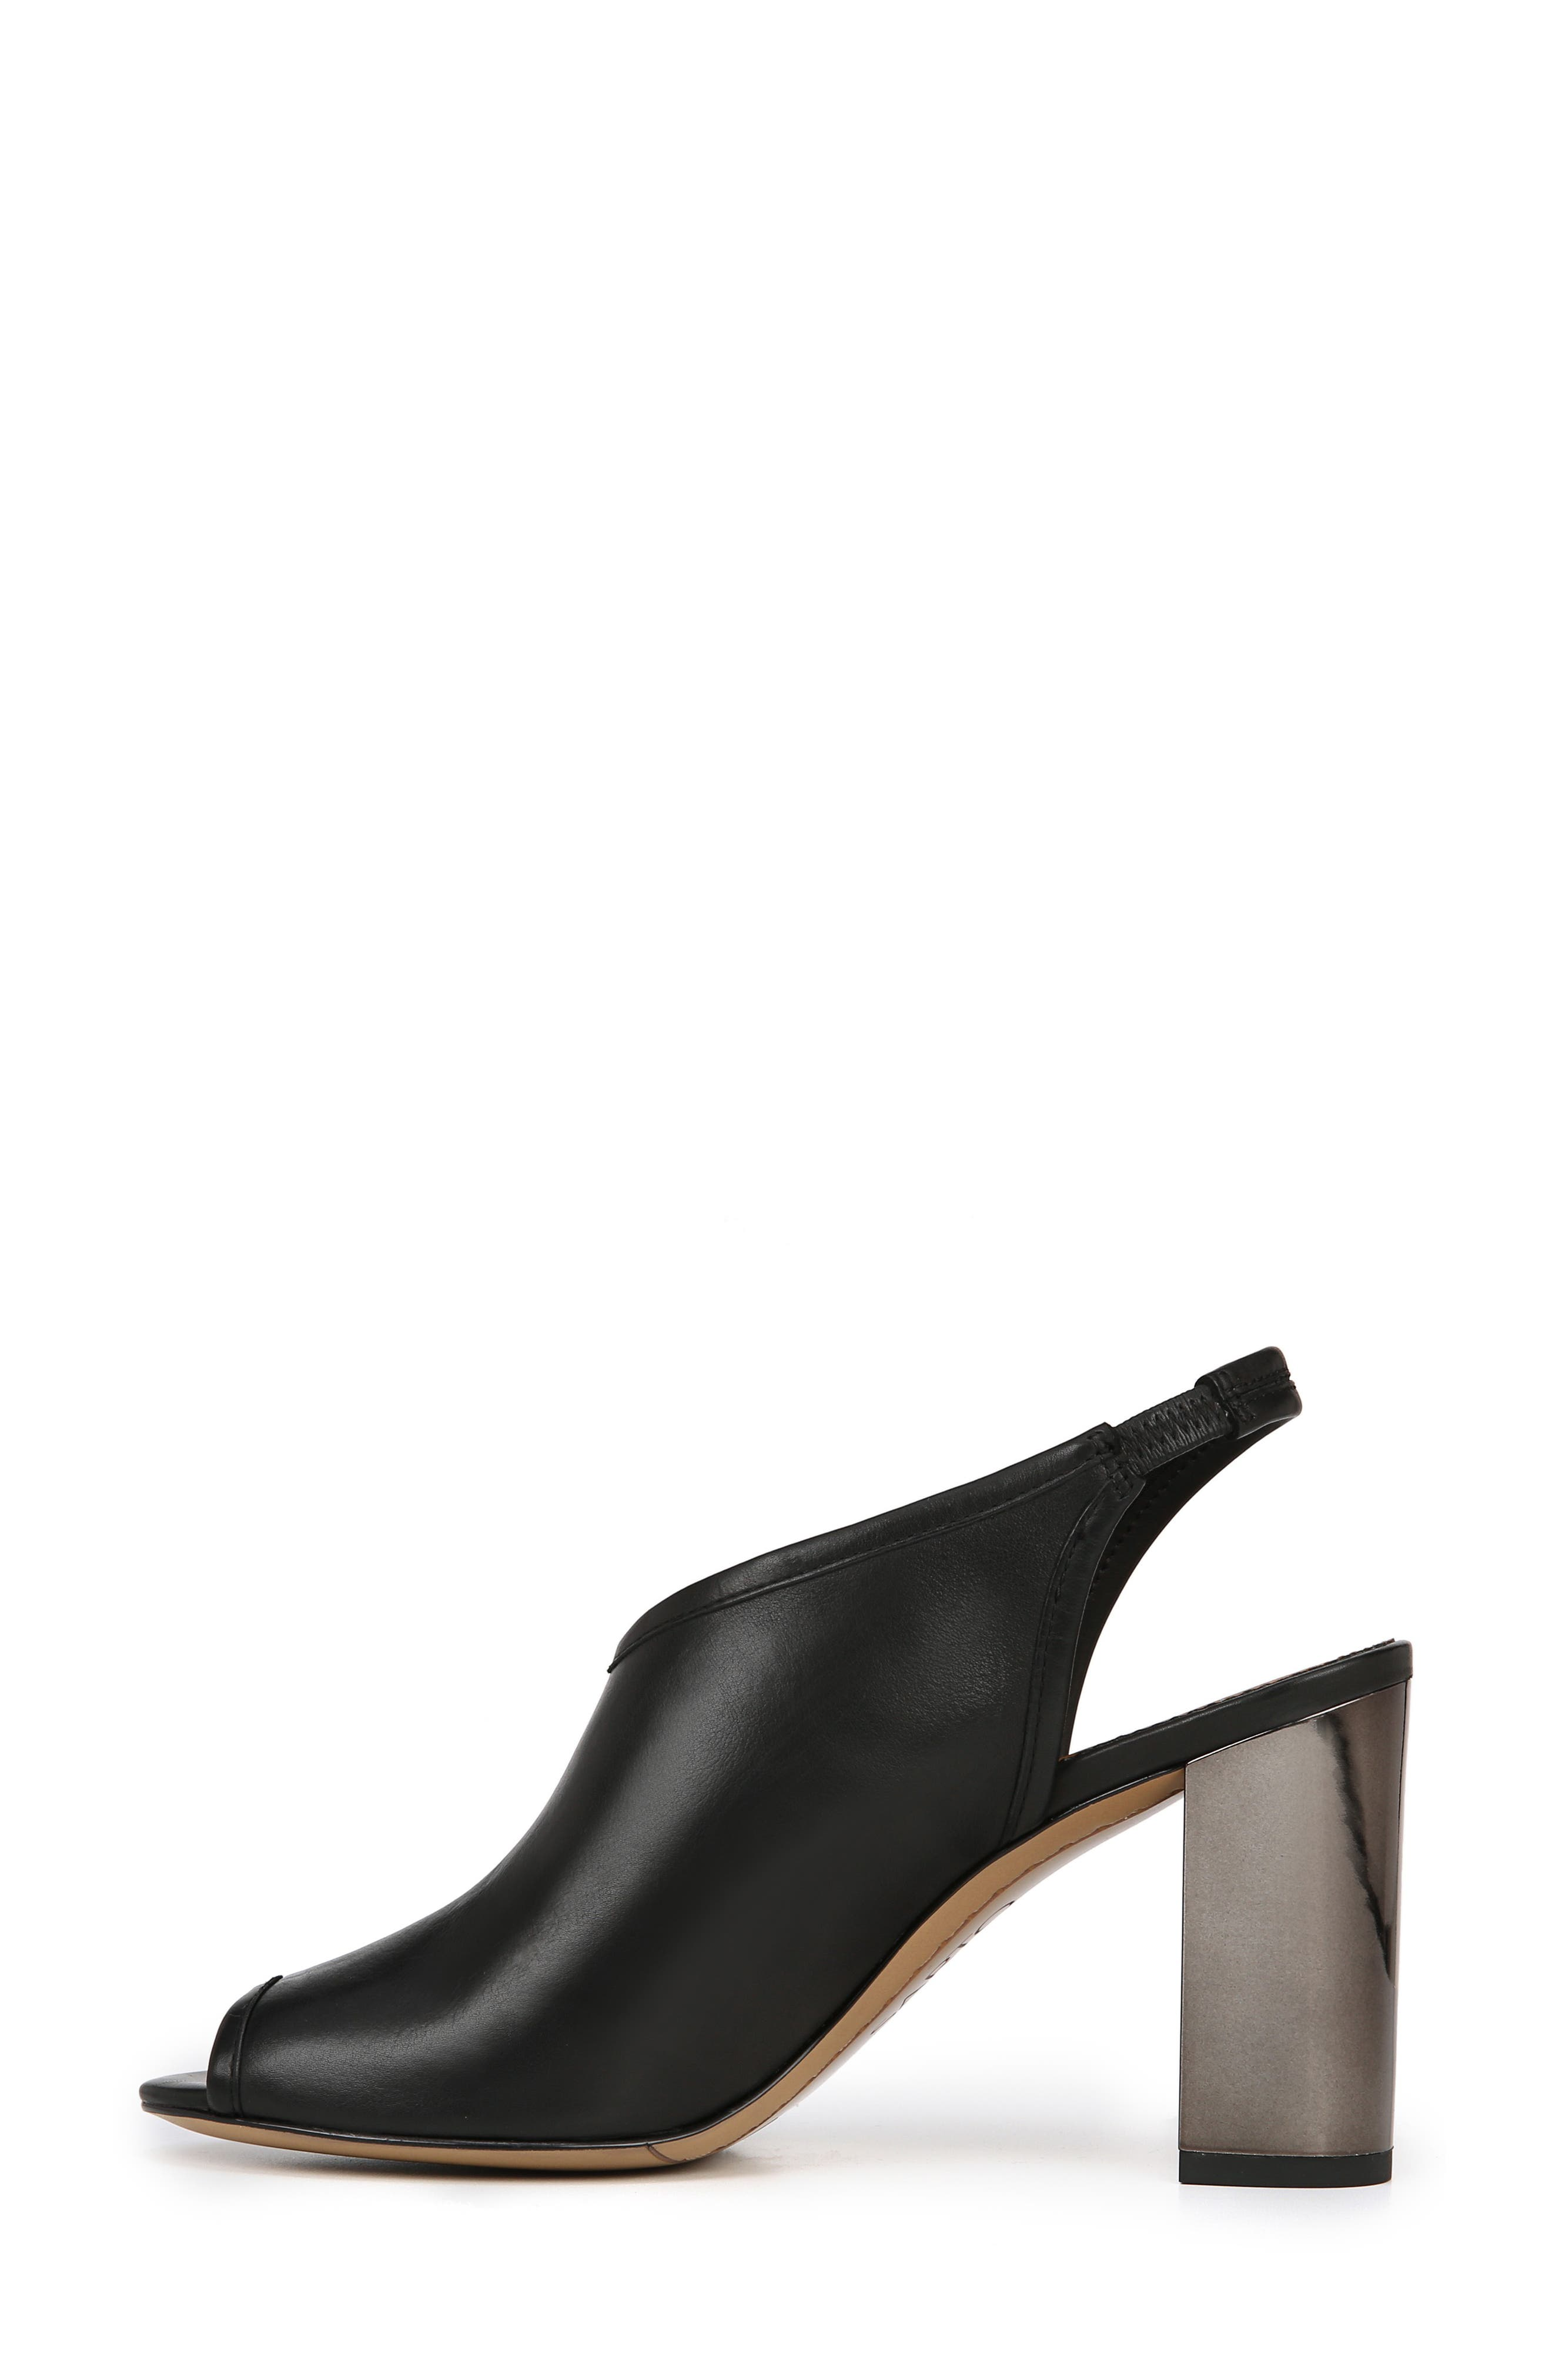 A-Osbourne Slingback Sandal,                             Alternate thumbnail 9, color,                             BLACK FOULARD LEATHER